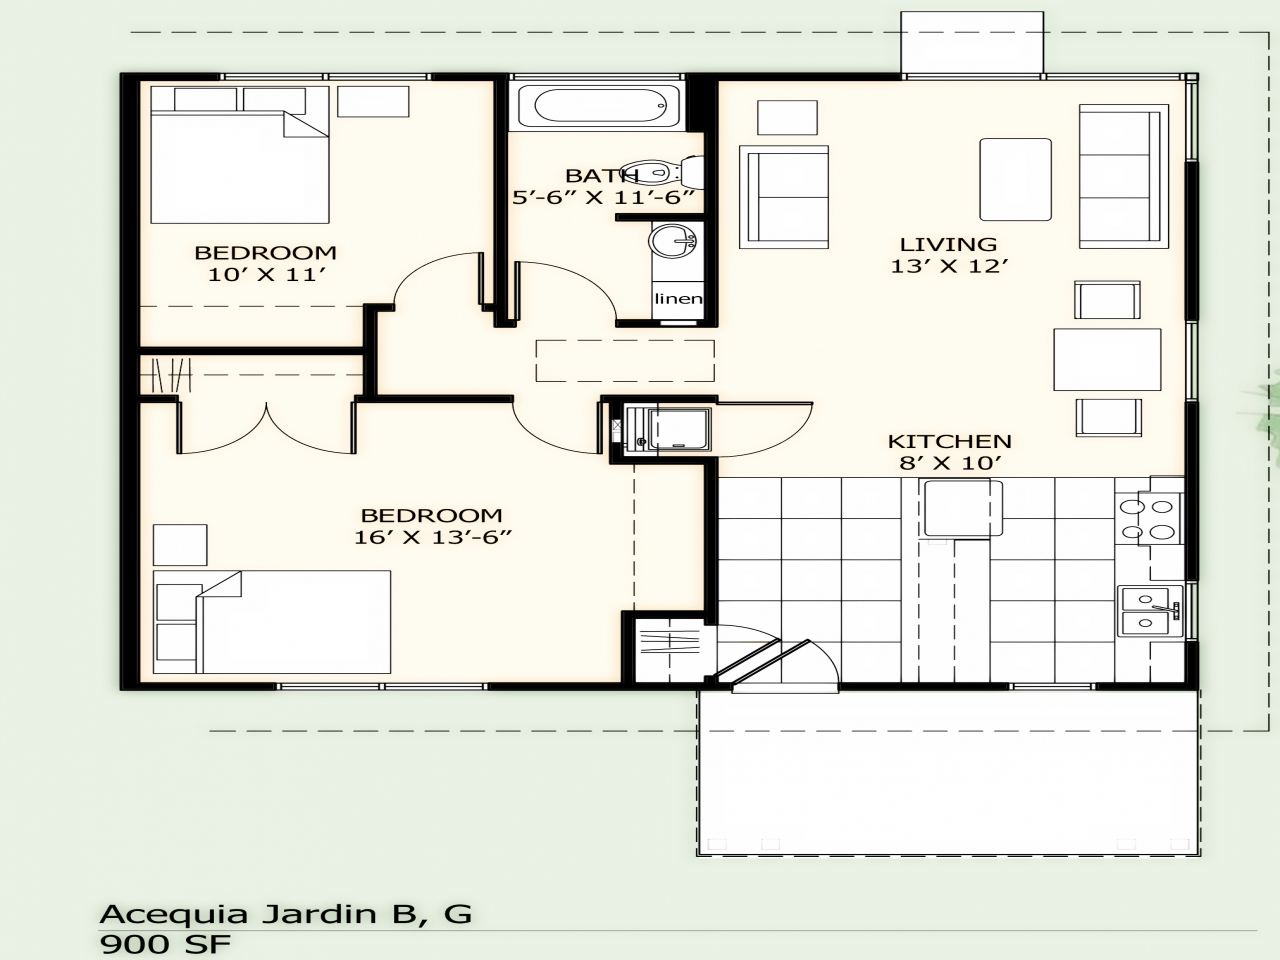 900 square foot house plans simple two bedroom 900 sq ft for Simple home plans free